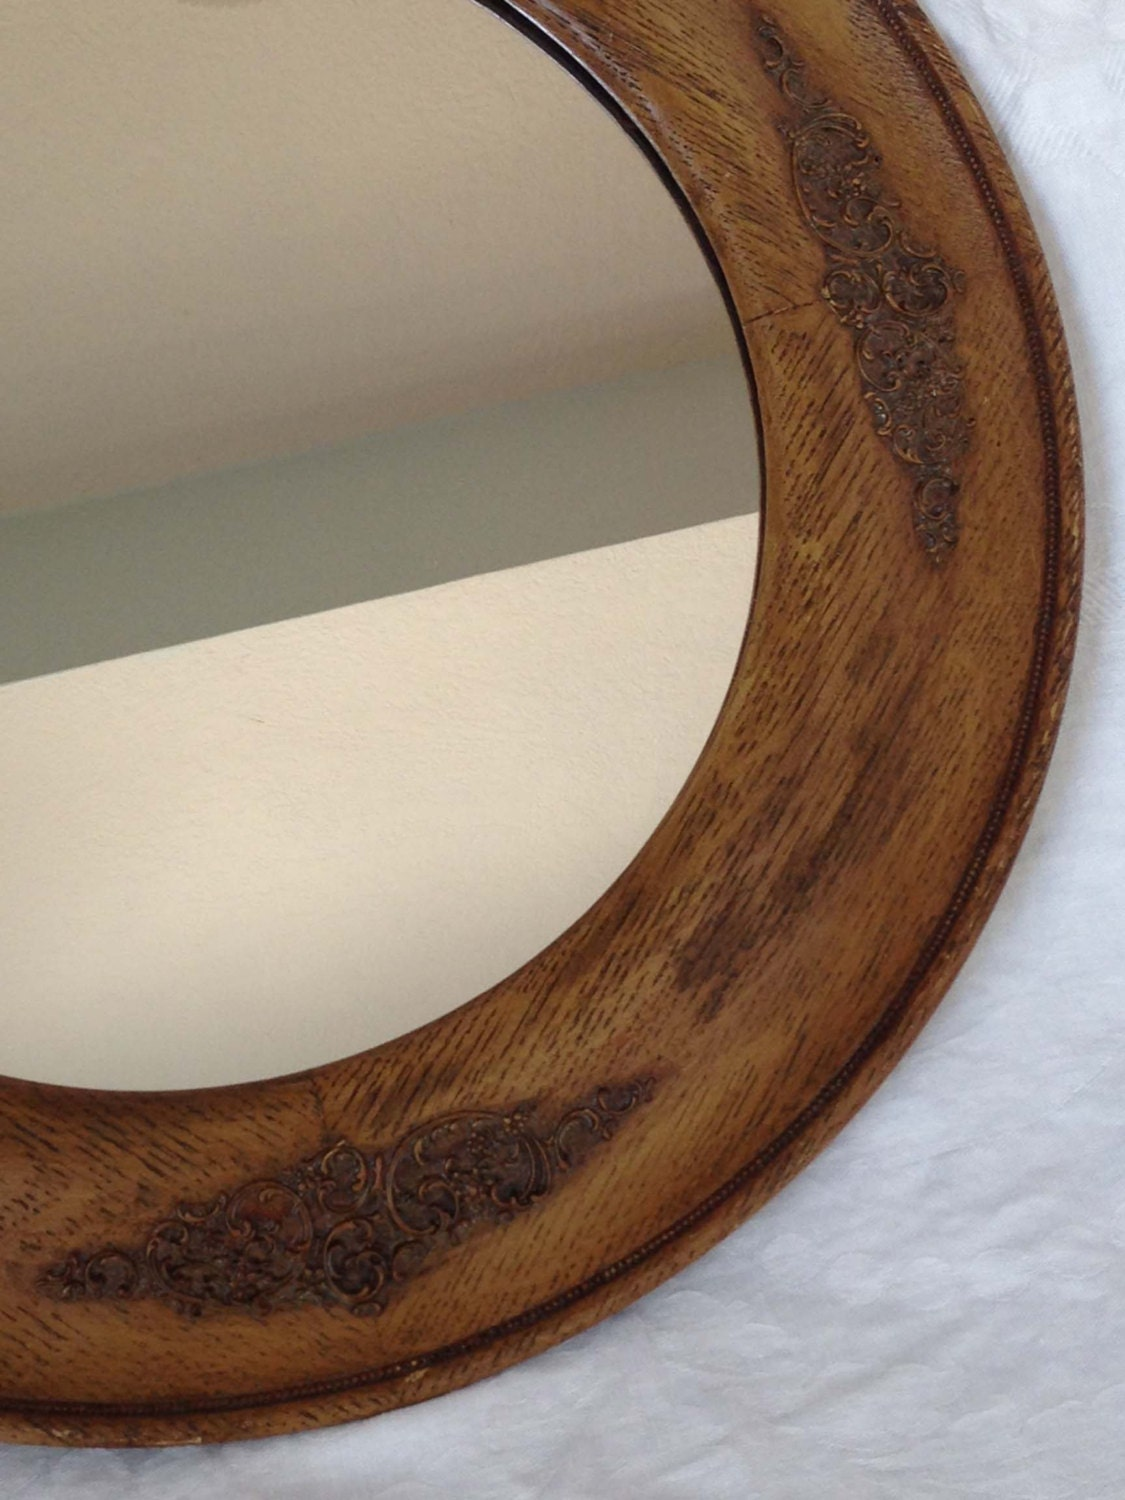 17 inch vintage round wood framed mirror with appliqu d Round framed mirror